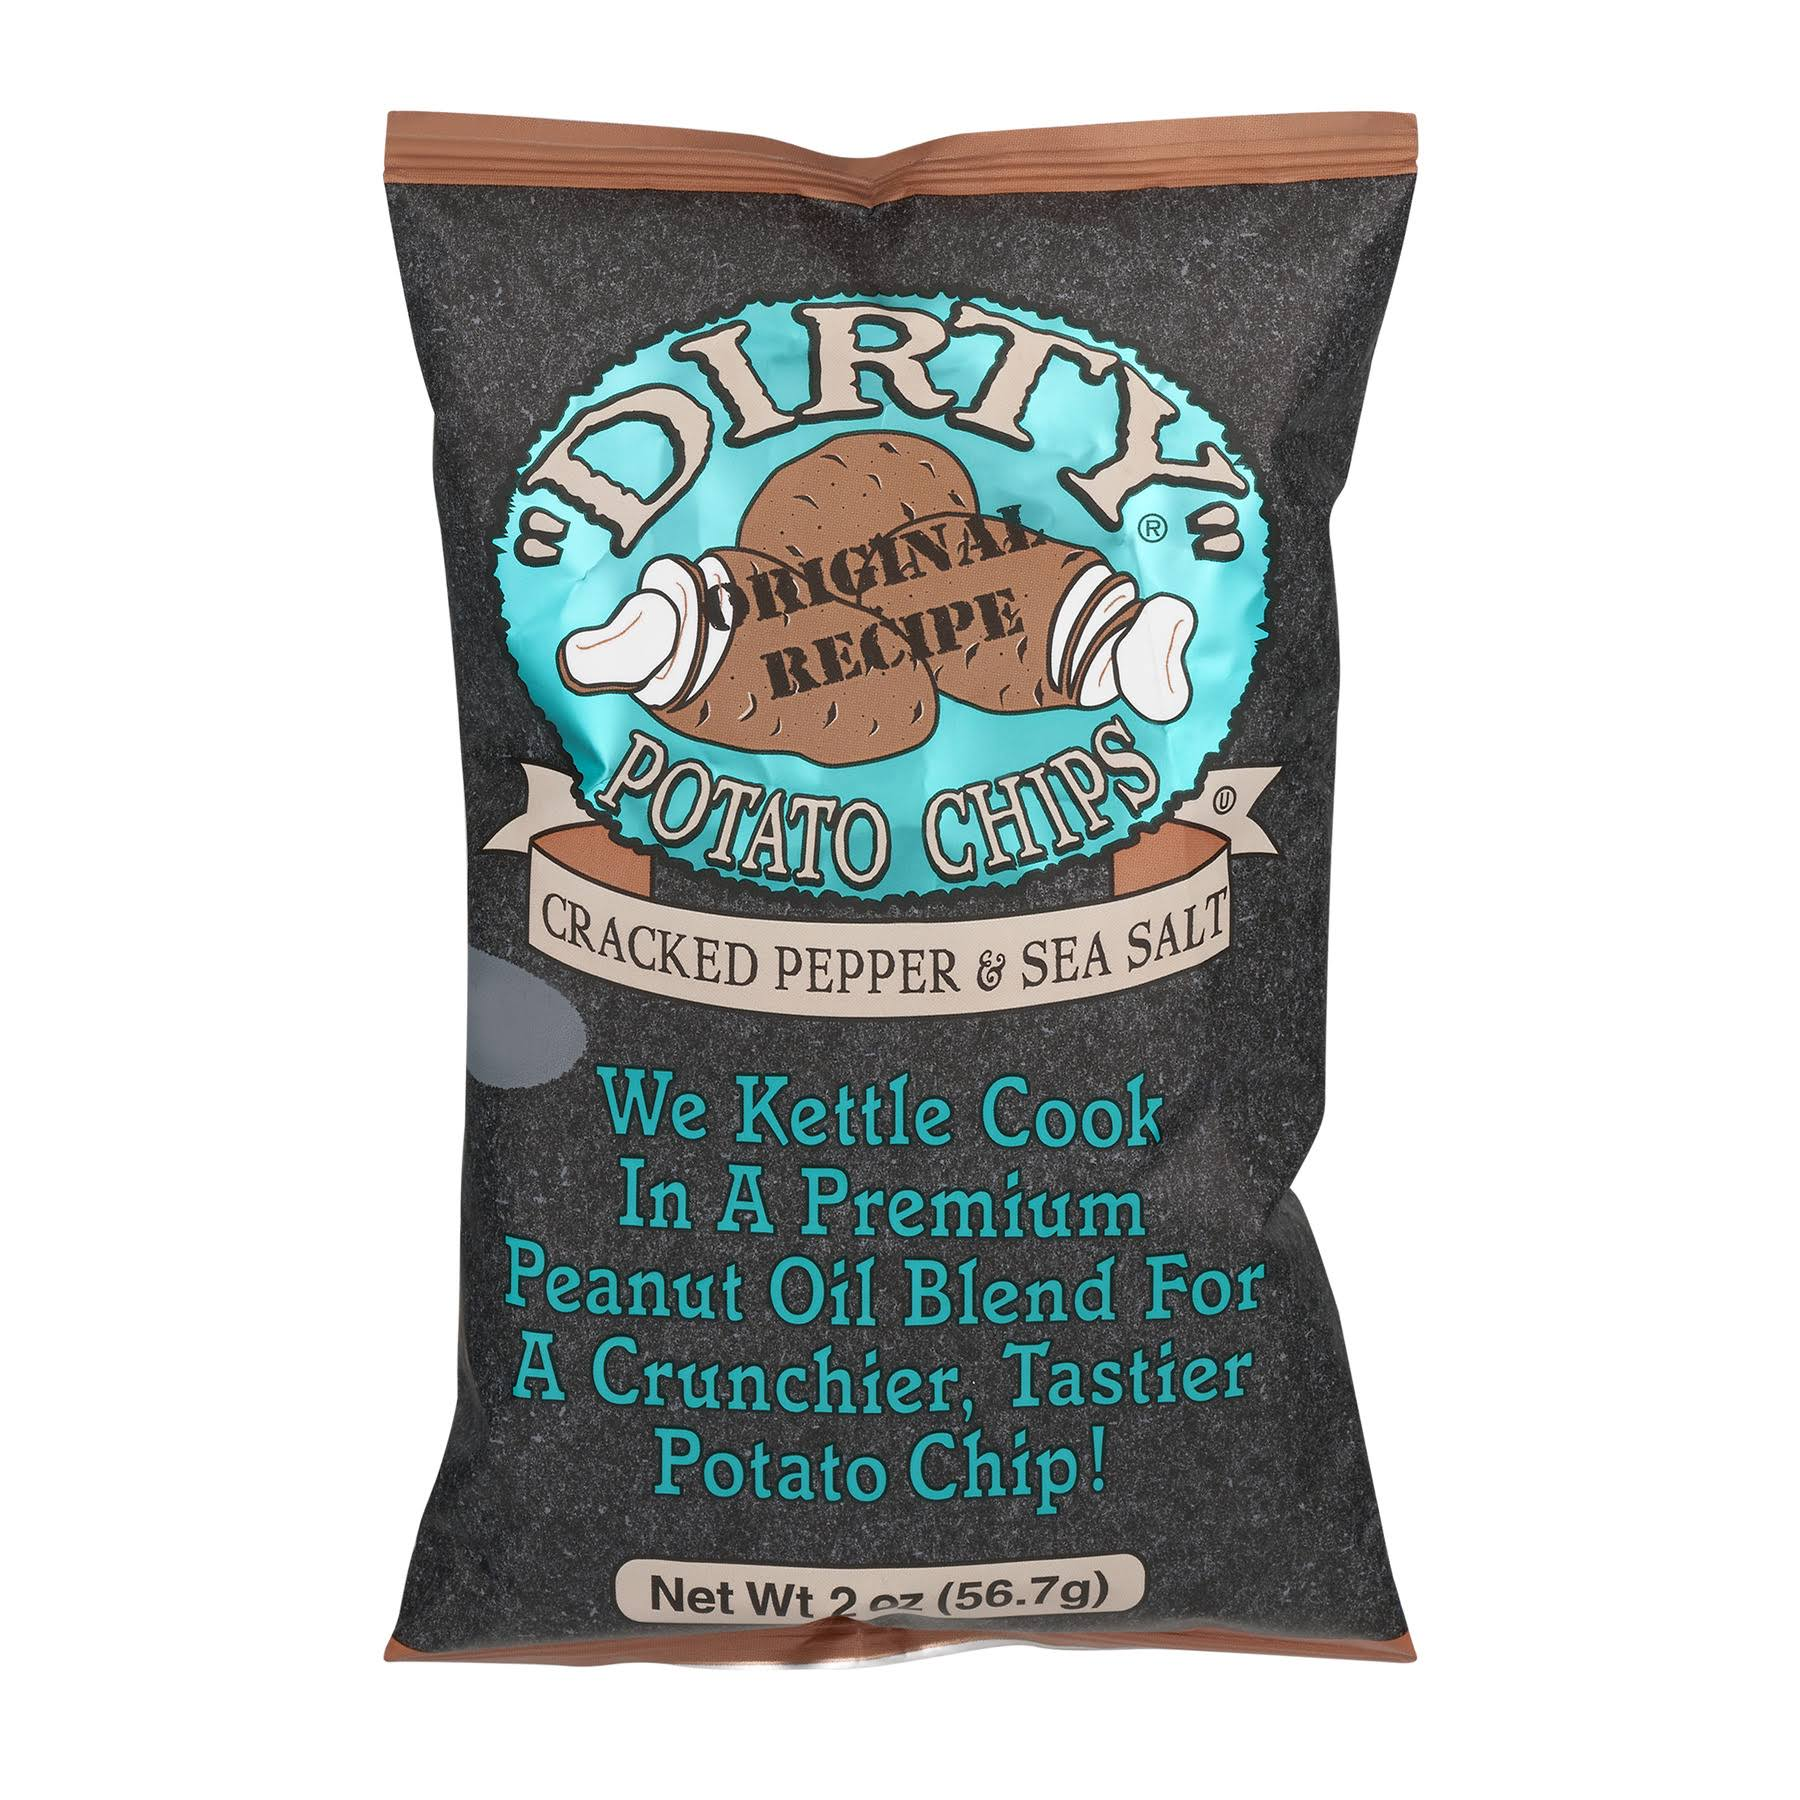 Dirty Potato Chips - Cracked Pepper & Sea Salt